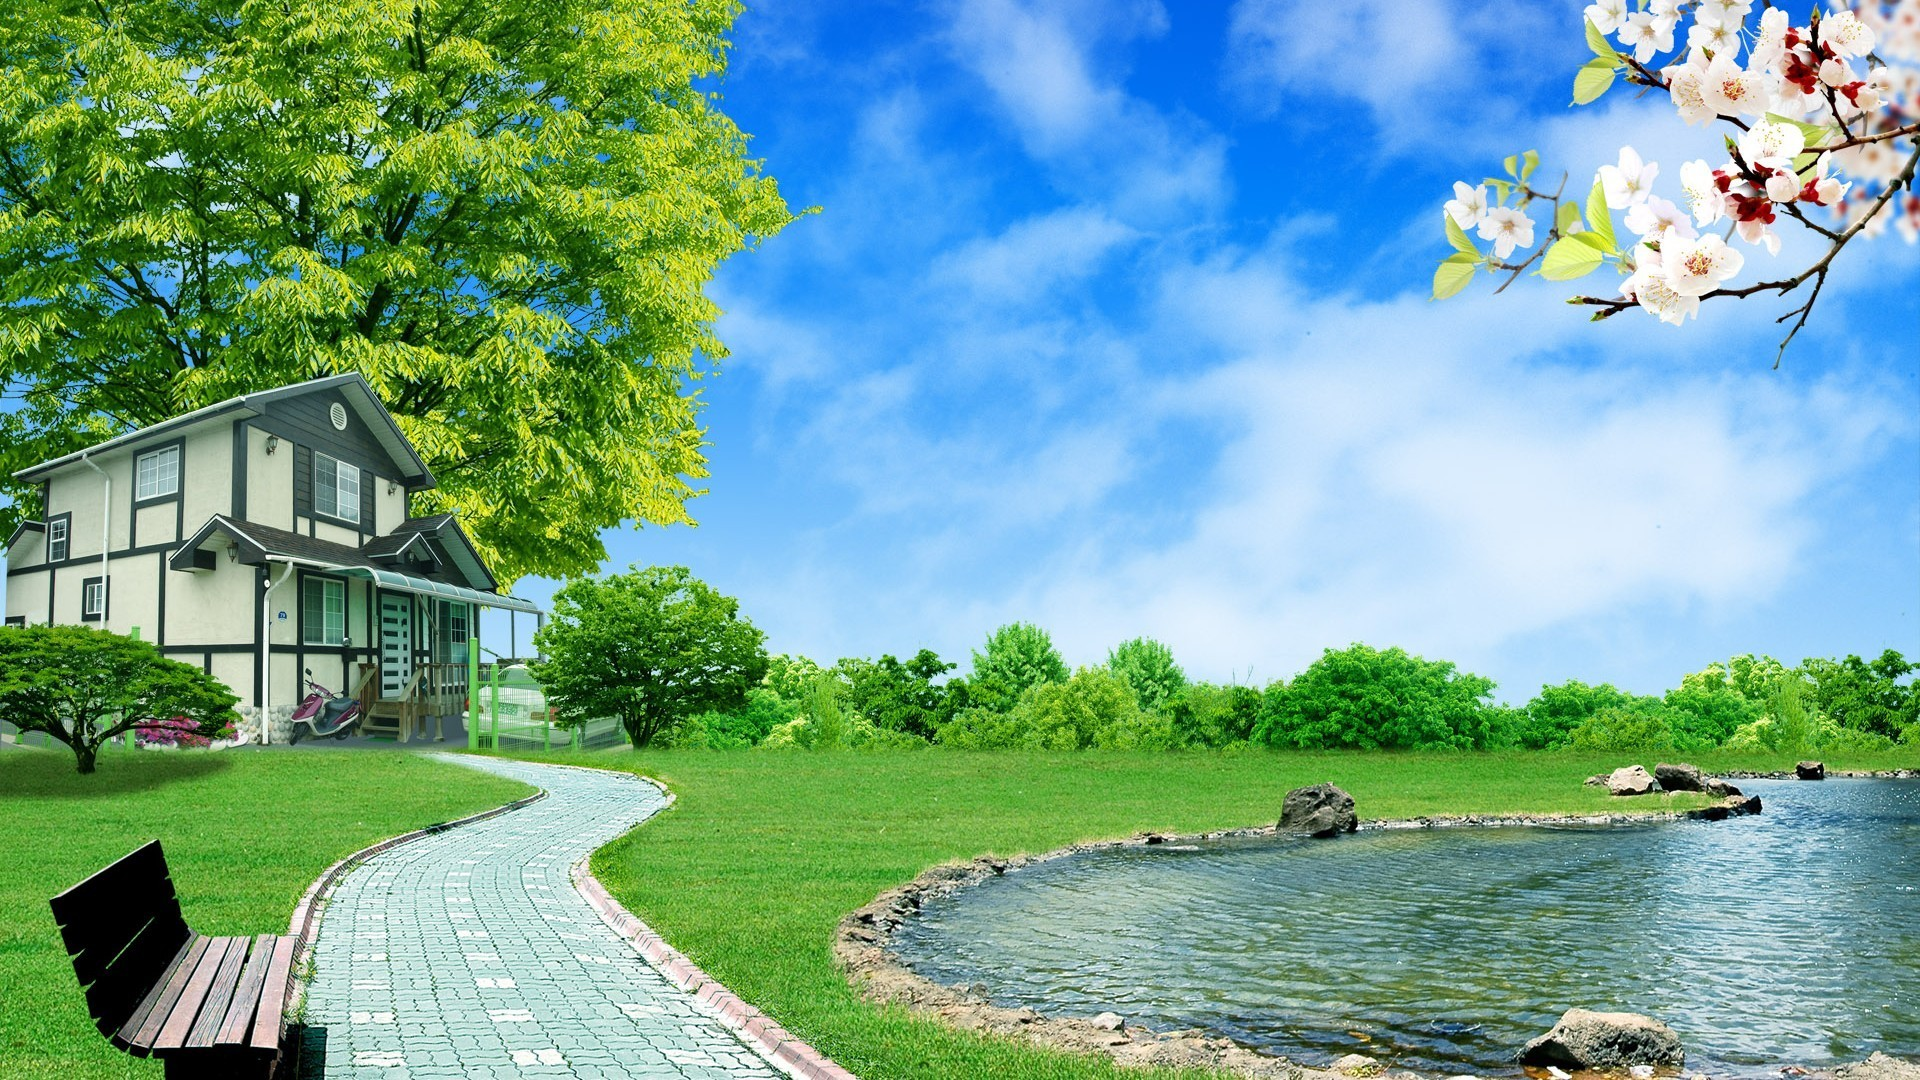 3D Wallpapers HD Nature: Find best latest 3D Wallpapers HD Nature in HD for  your